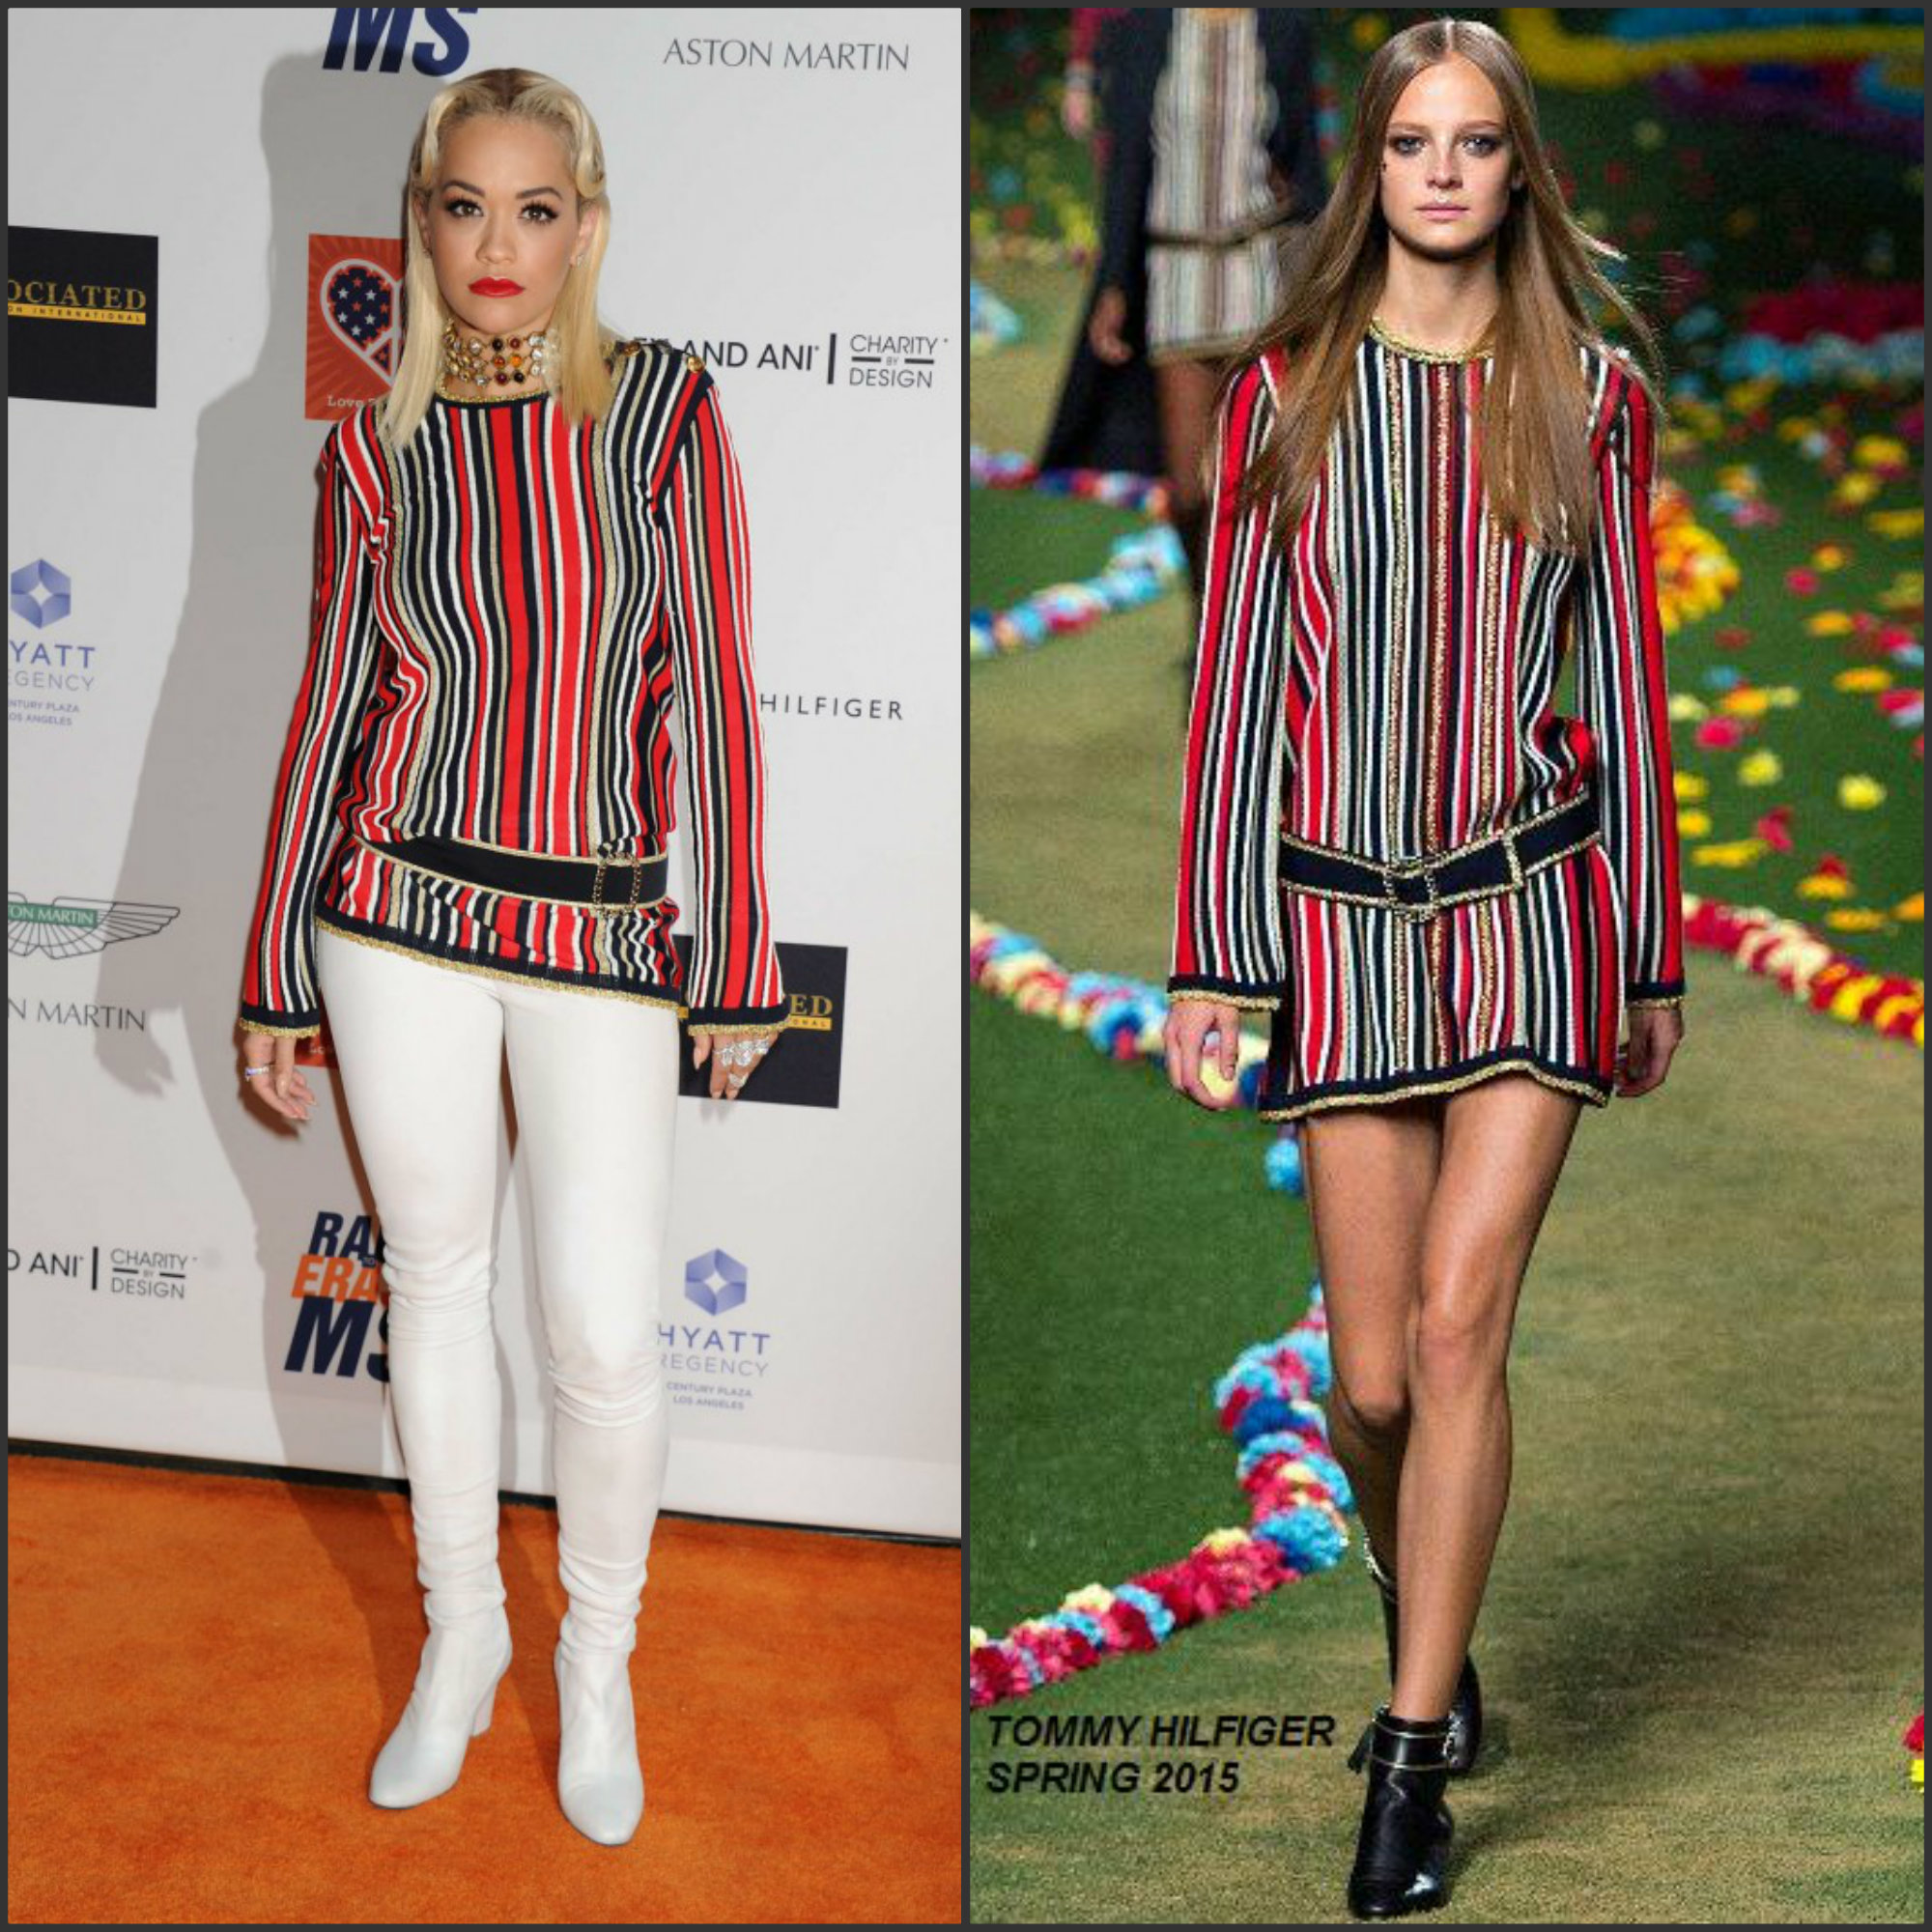 Rita-Ora-in-Tommy-Hilfiger-at-the-22nd-Annual-Race-to-Erase-MS-Event